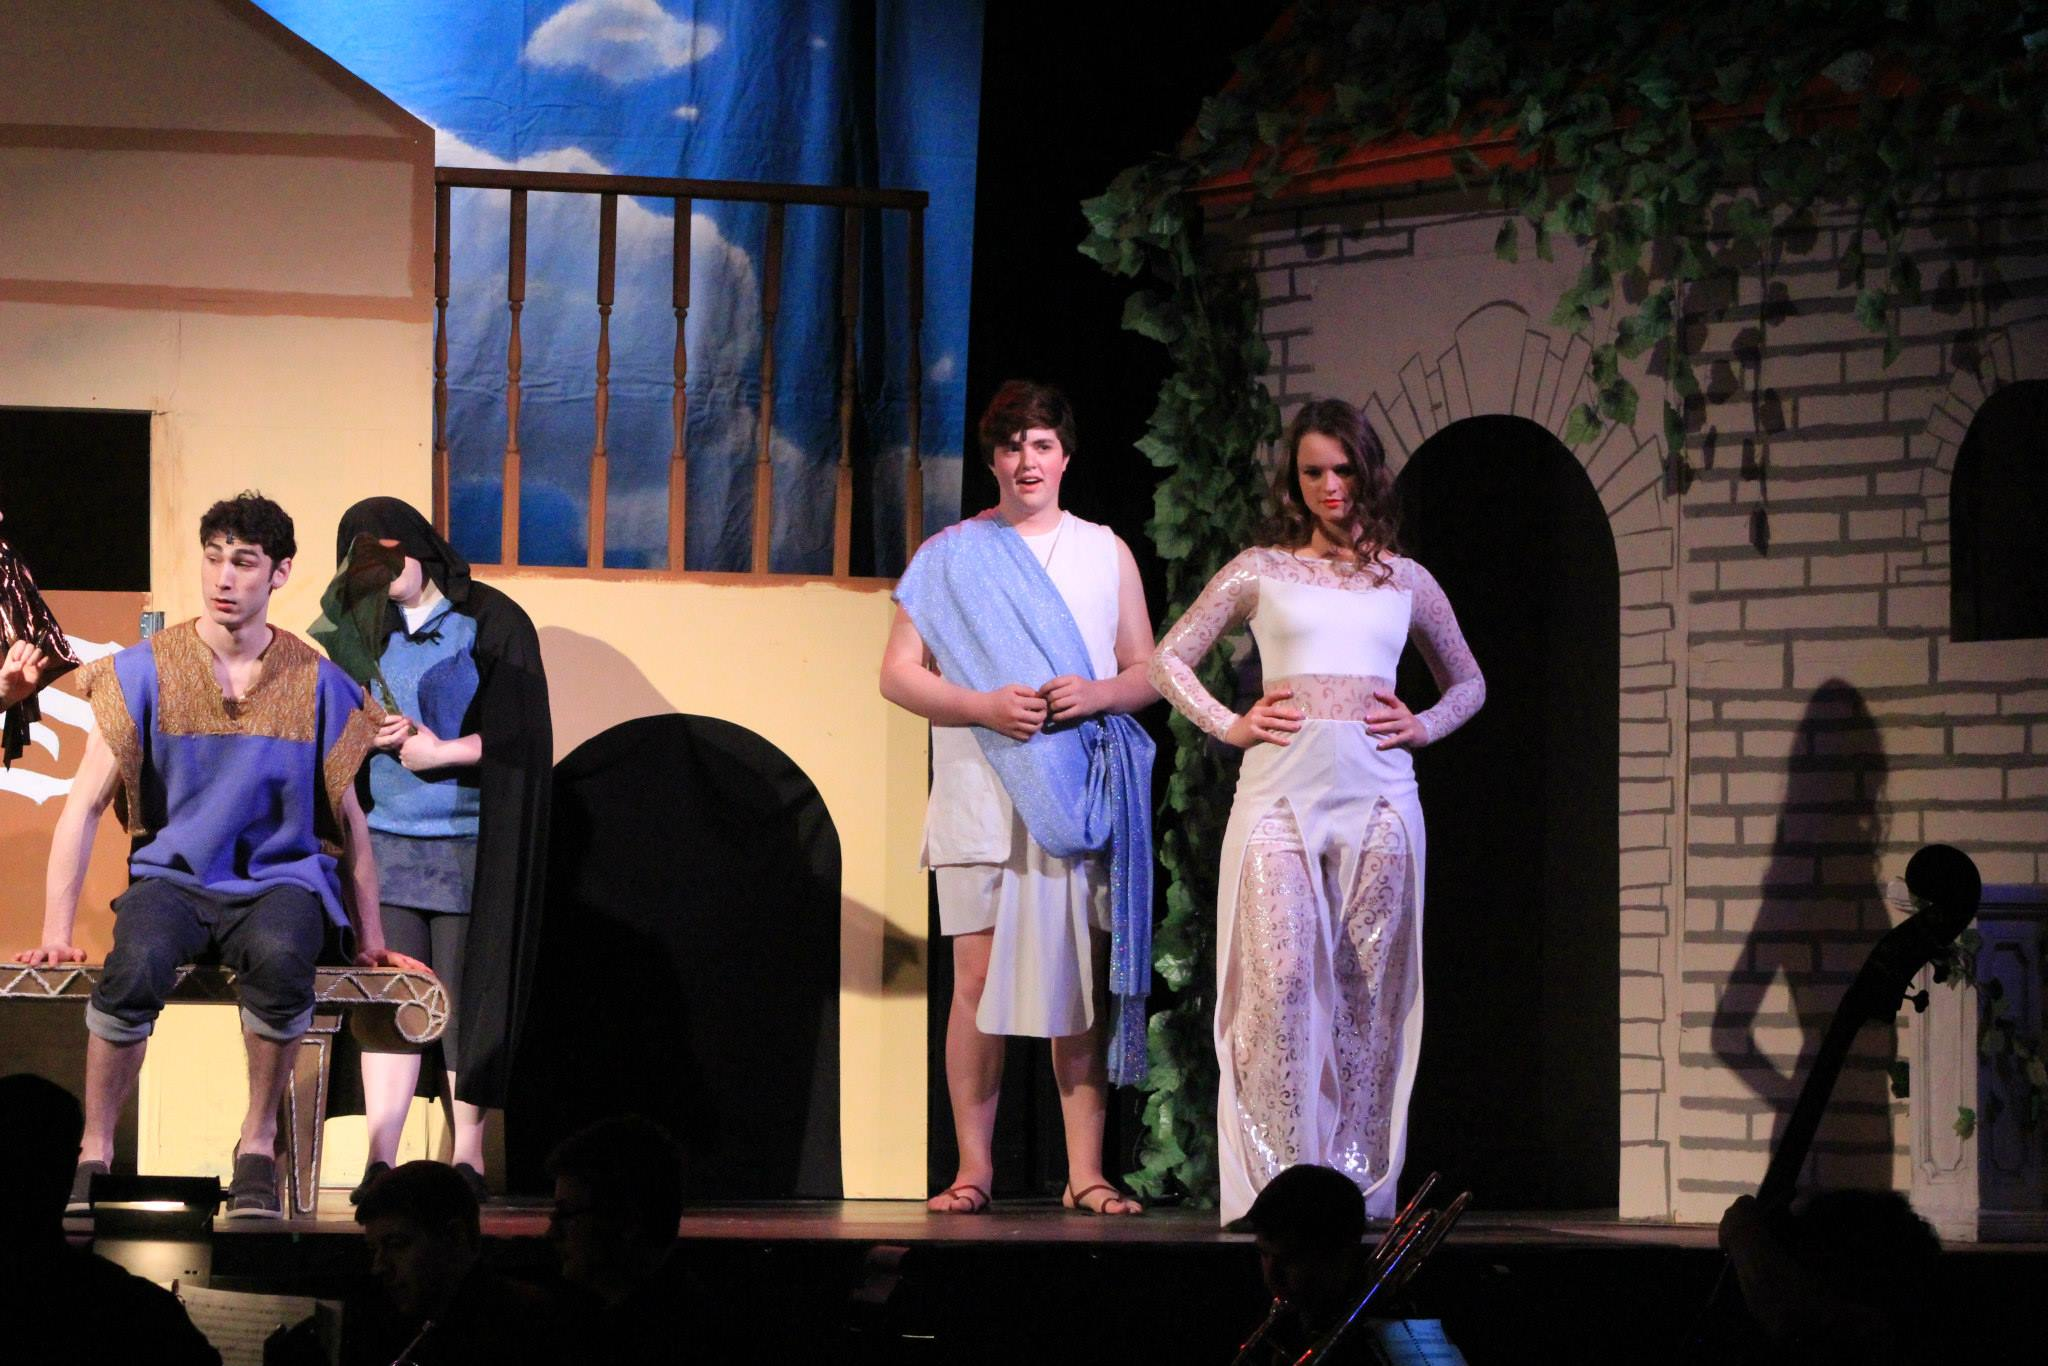 Photos of members of the cast of 'Forum' by Robert Rosa